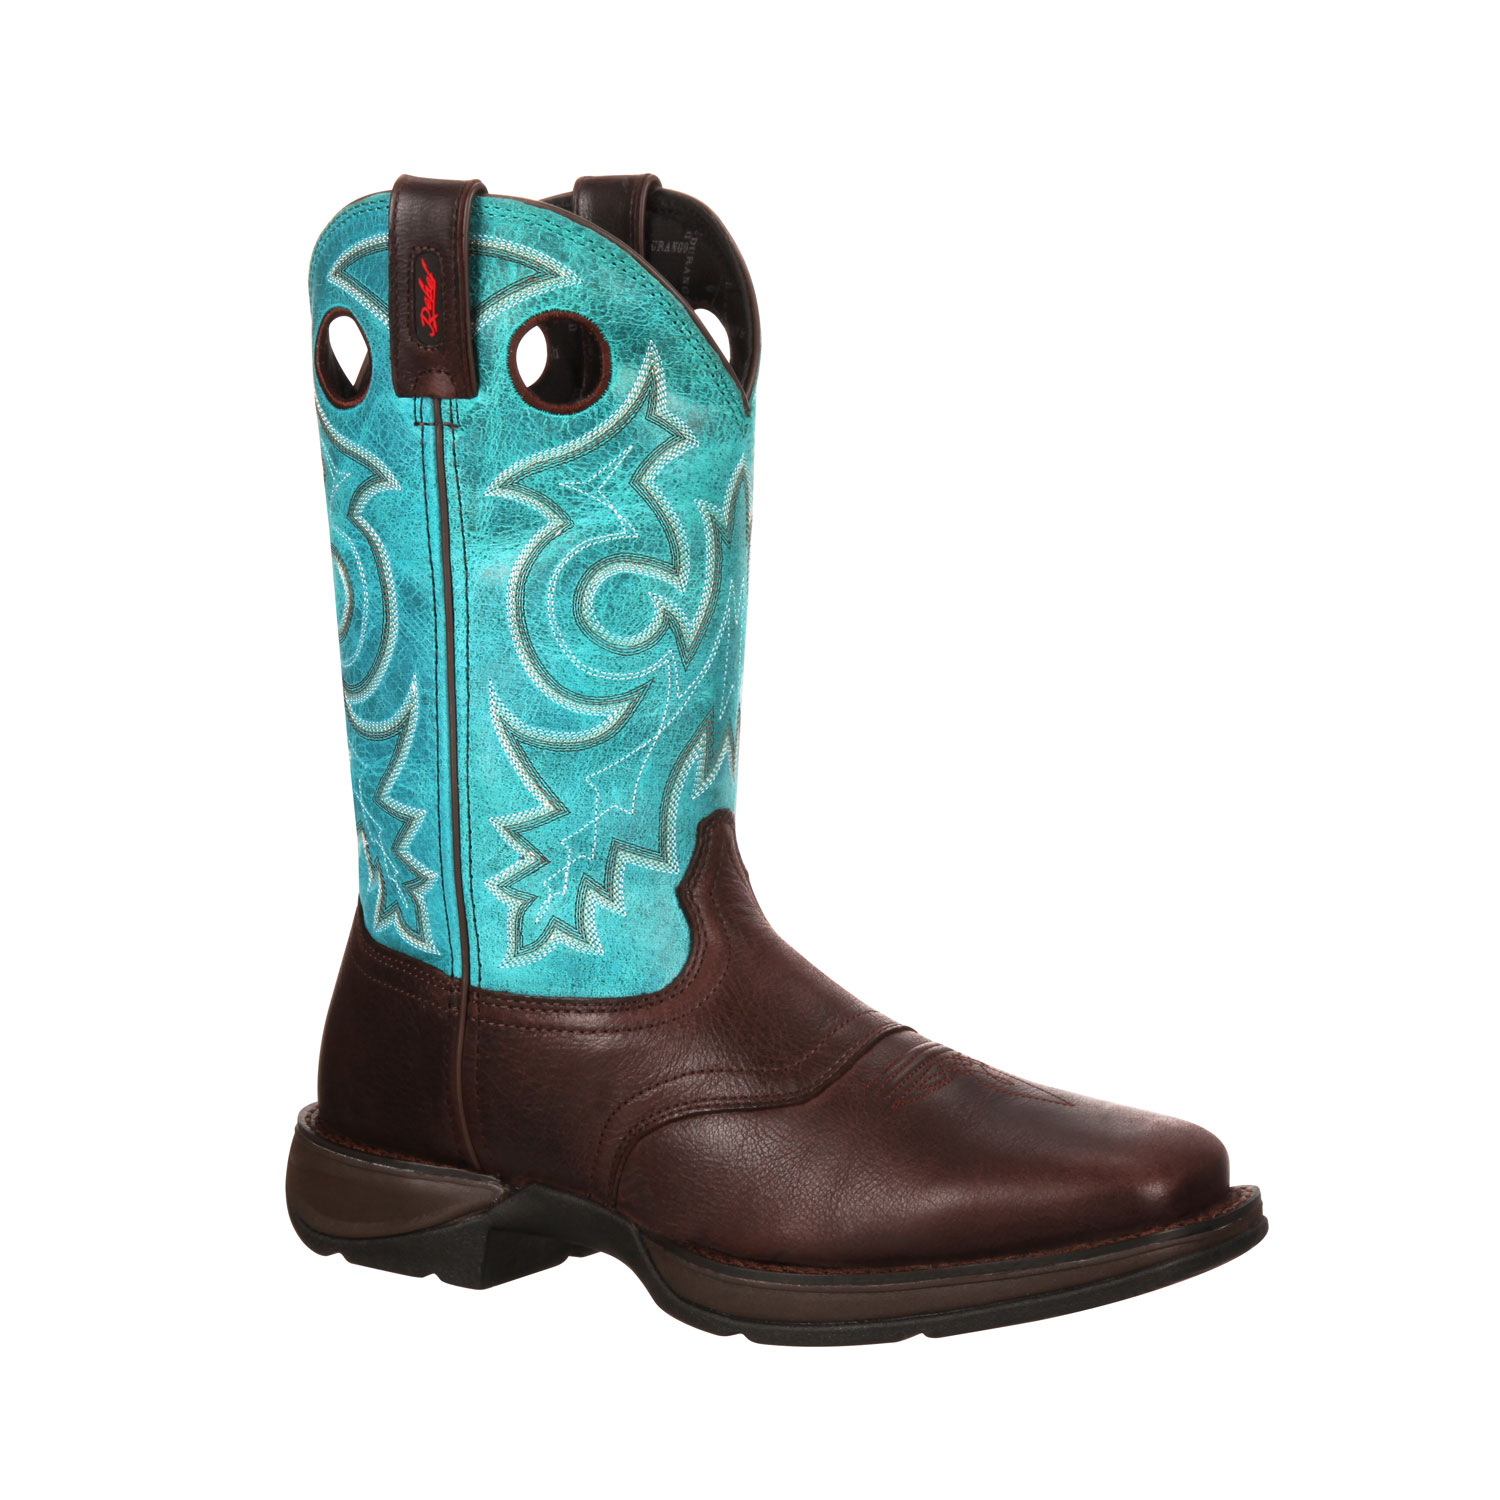 durango s rebel saddle pull on western boot brown and